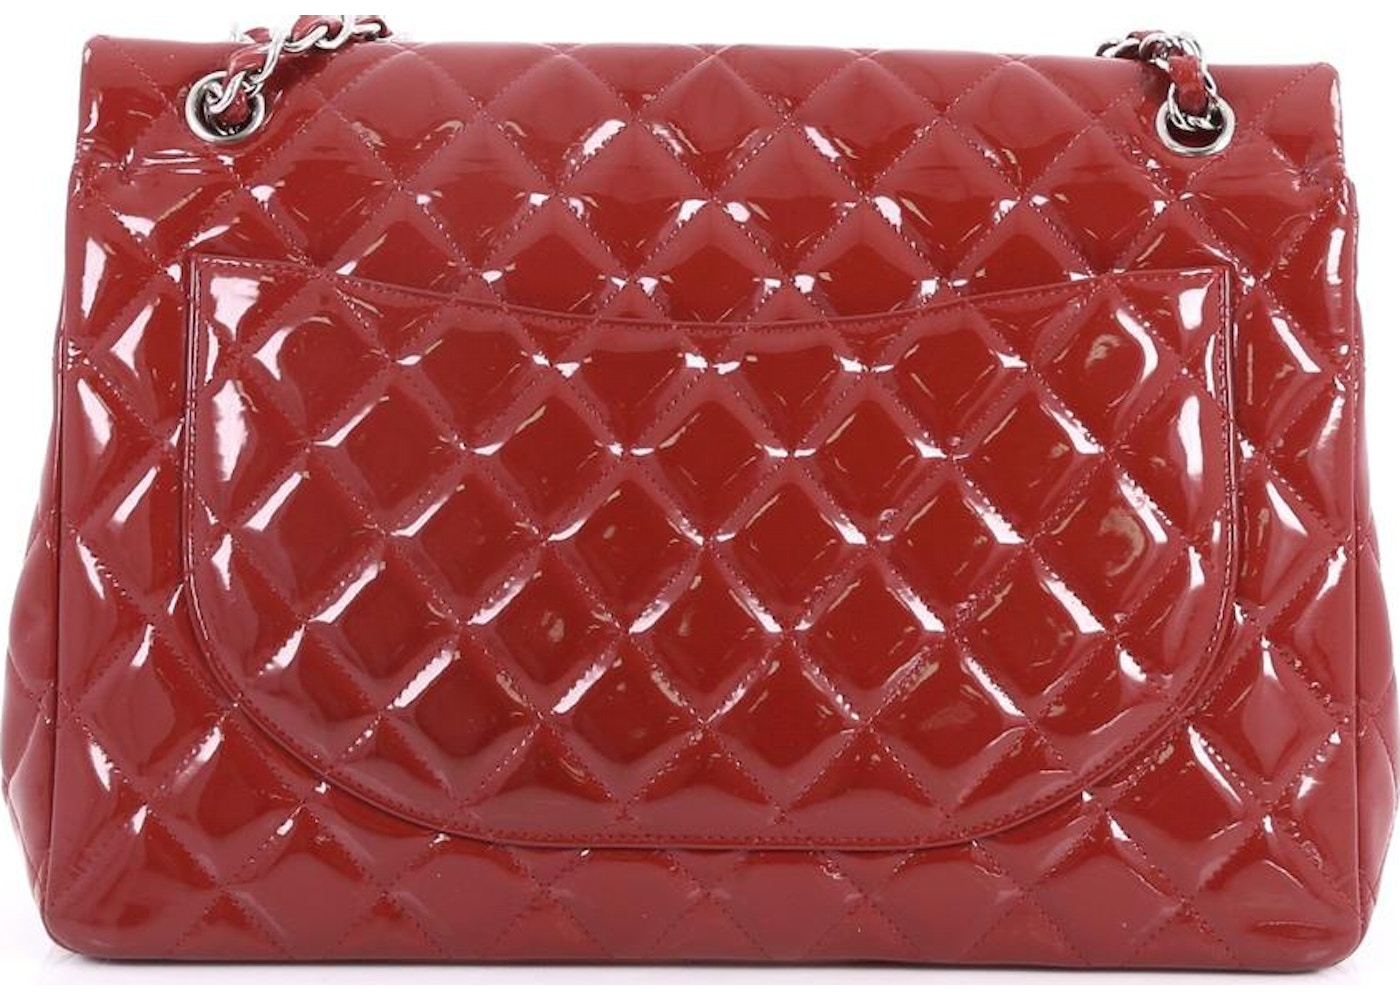 b8083c85bdac02 Chanel Classic Double Flap Quilted Maxi Red